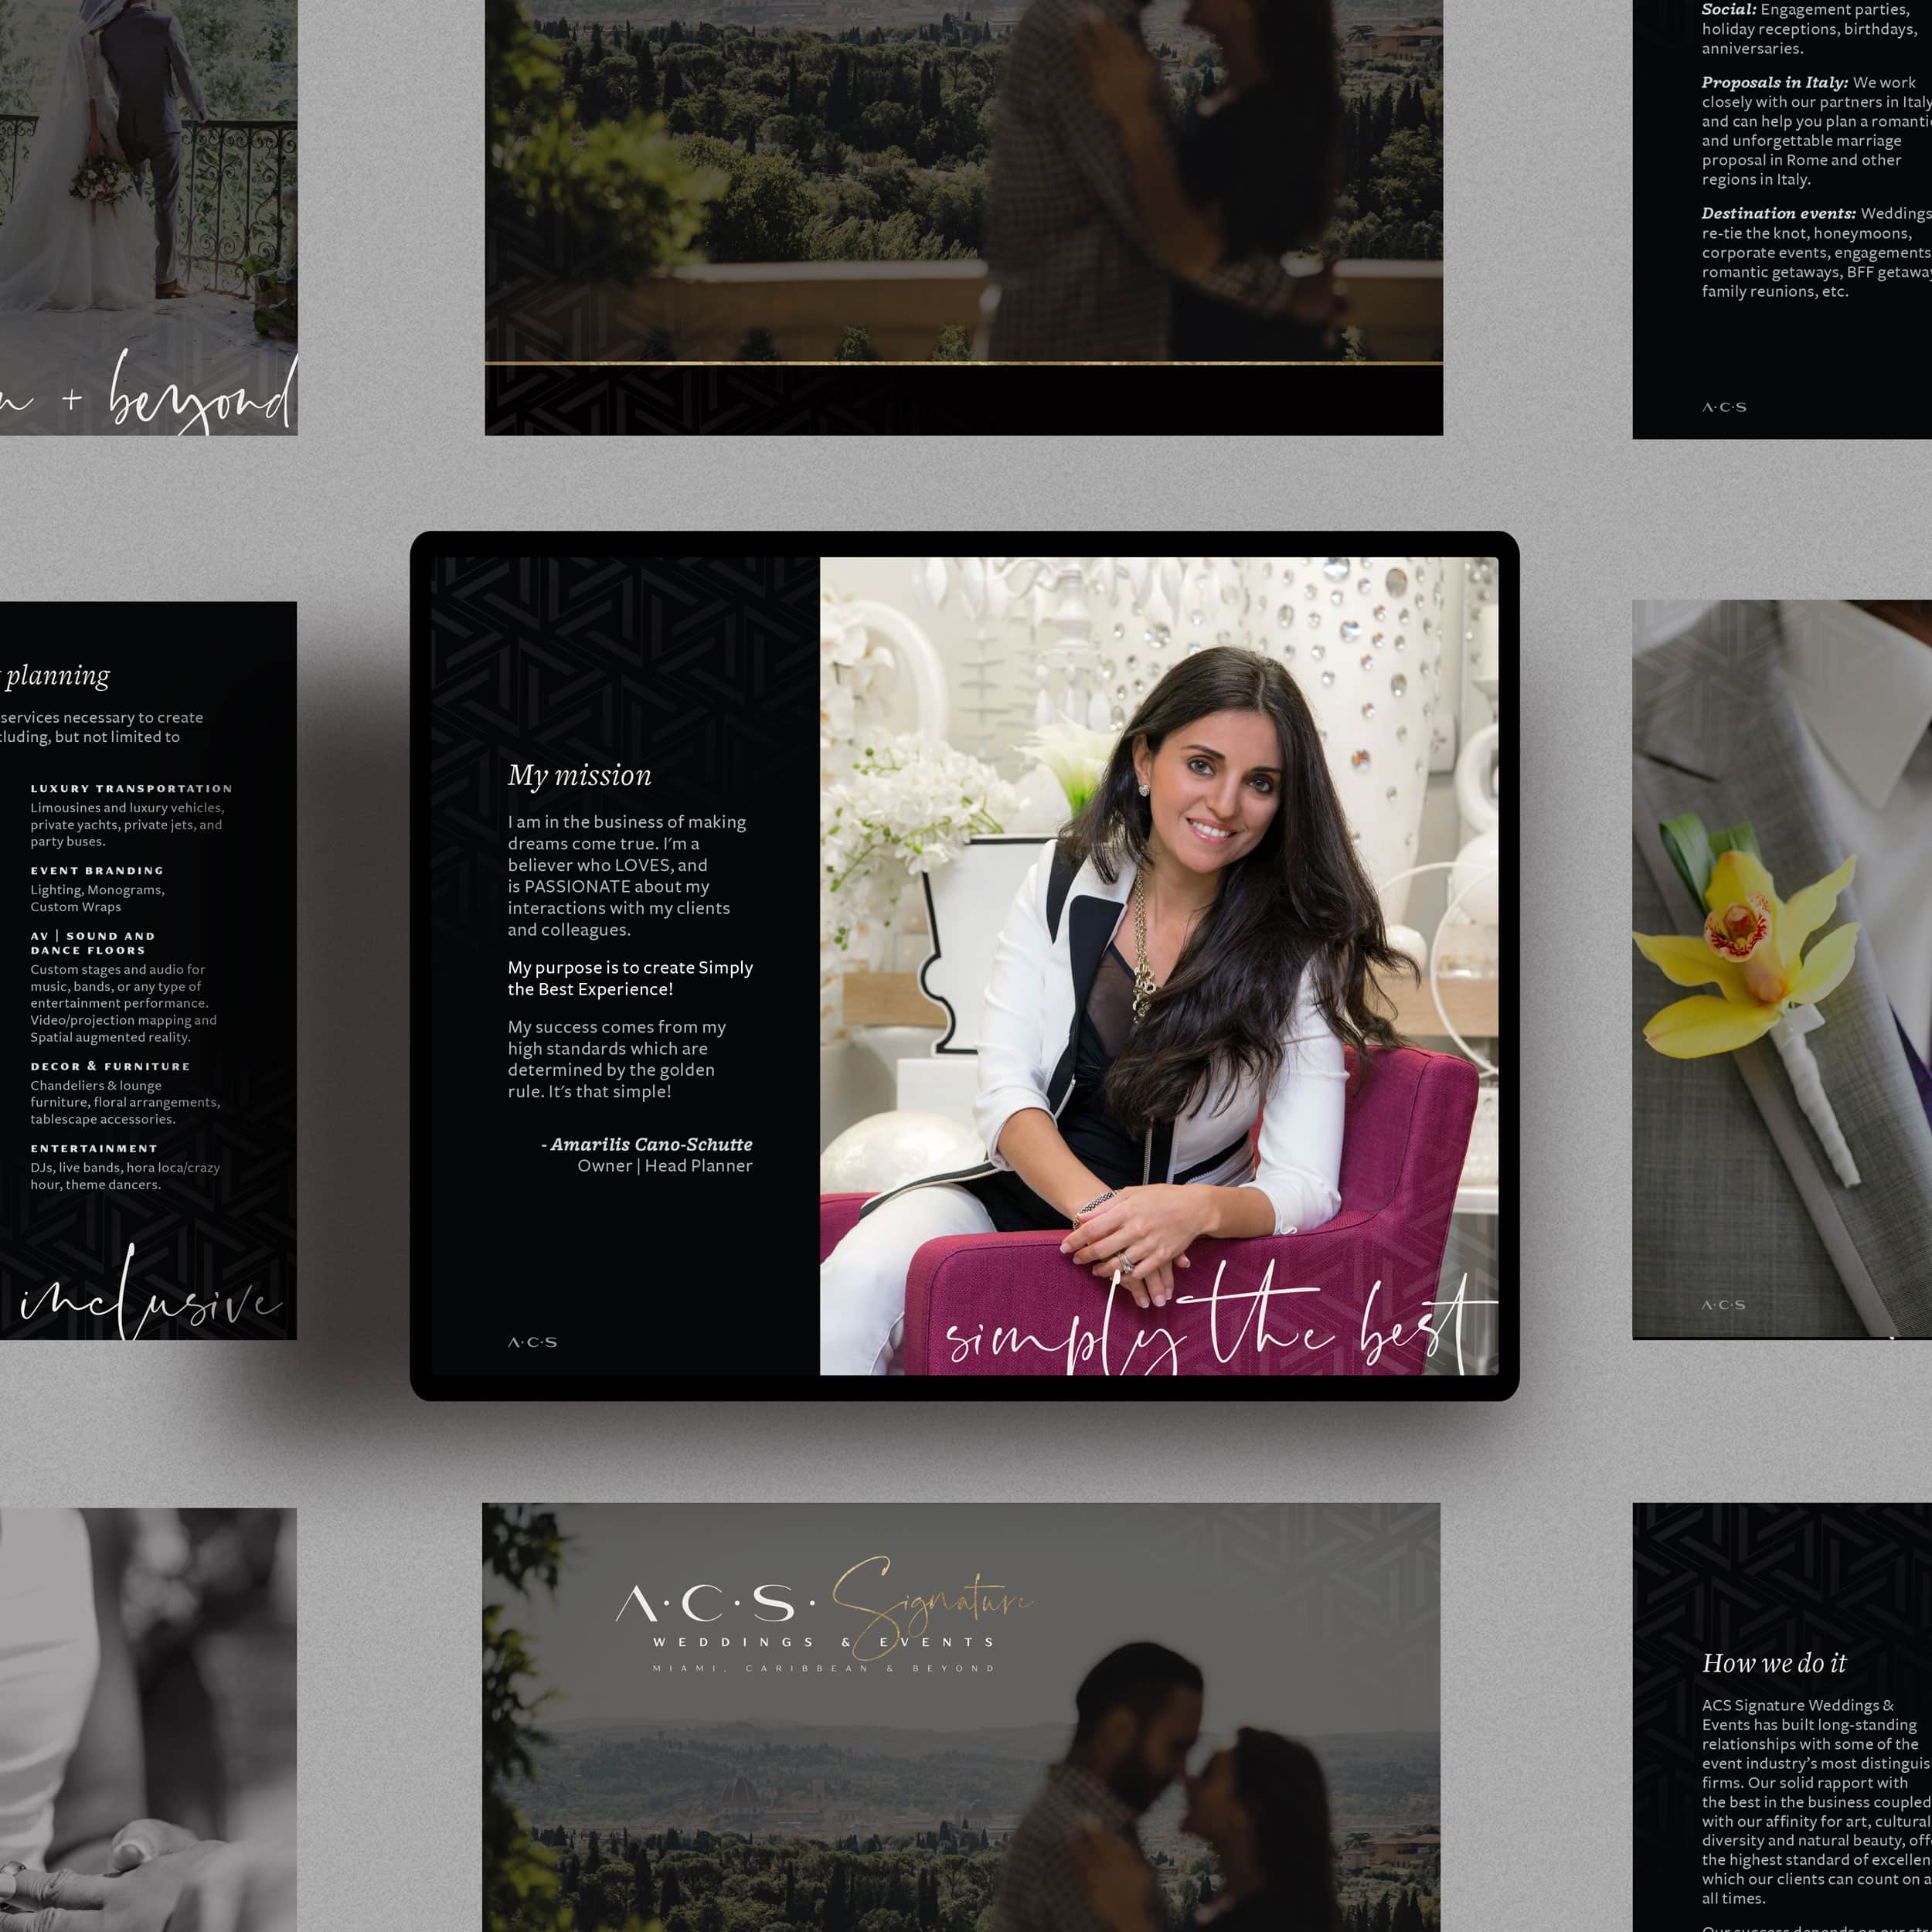 A grid of images and the center image has a photo of a woman